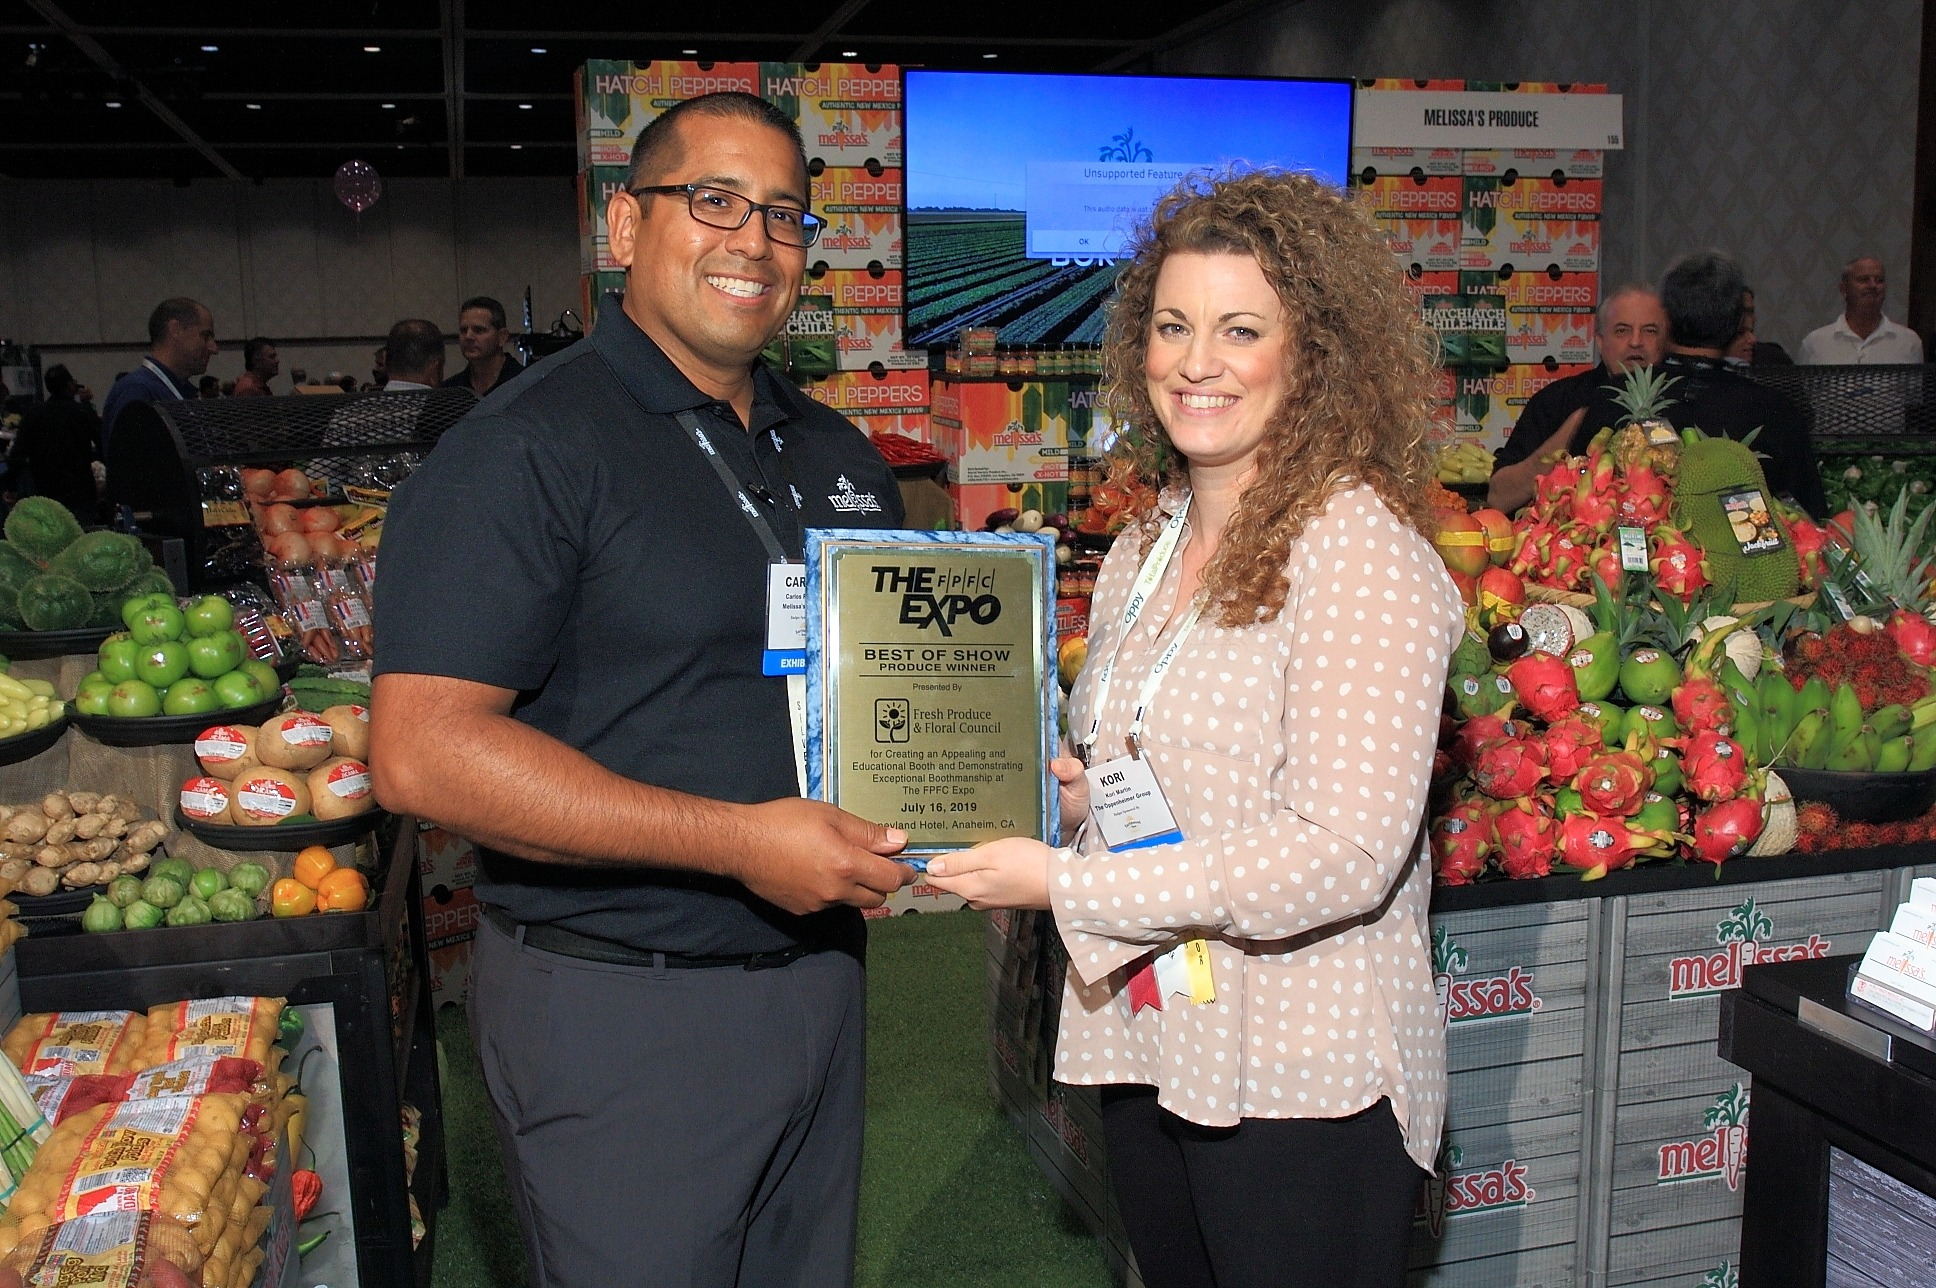 Carlos Preciado from Melissa's Produce accepts the Produce Best of Show Award from Expo Committee Chair Kori Martin from The Oppenheimer Group